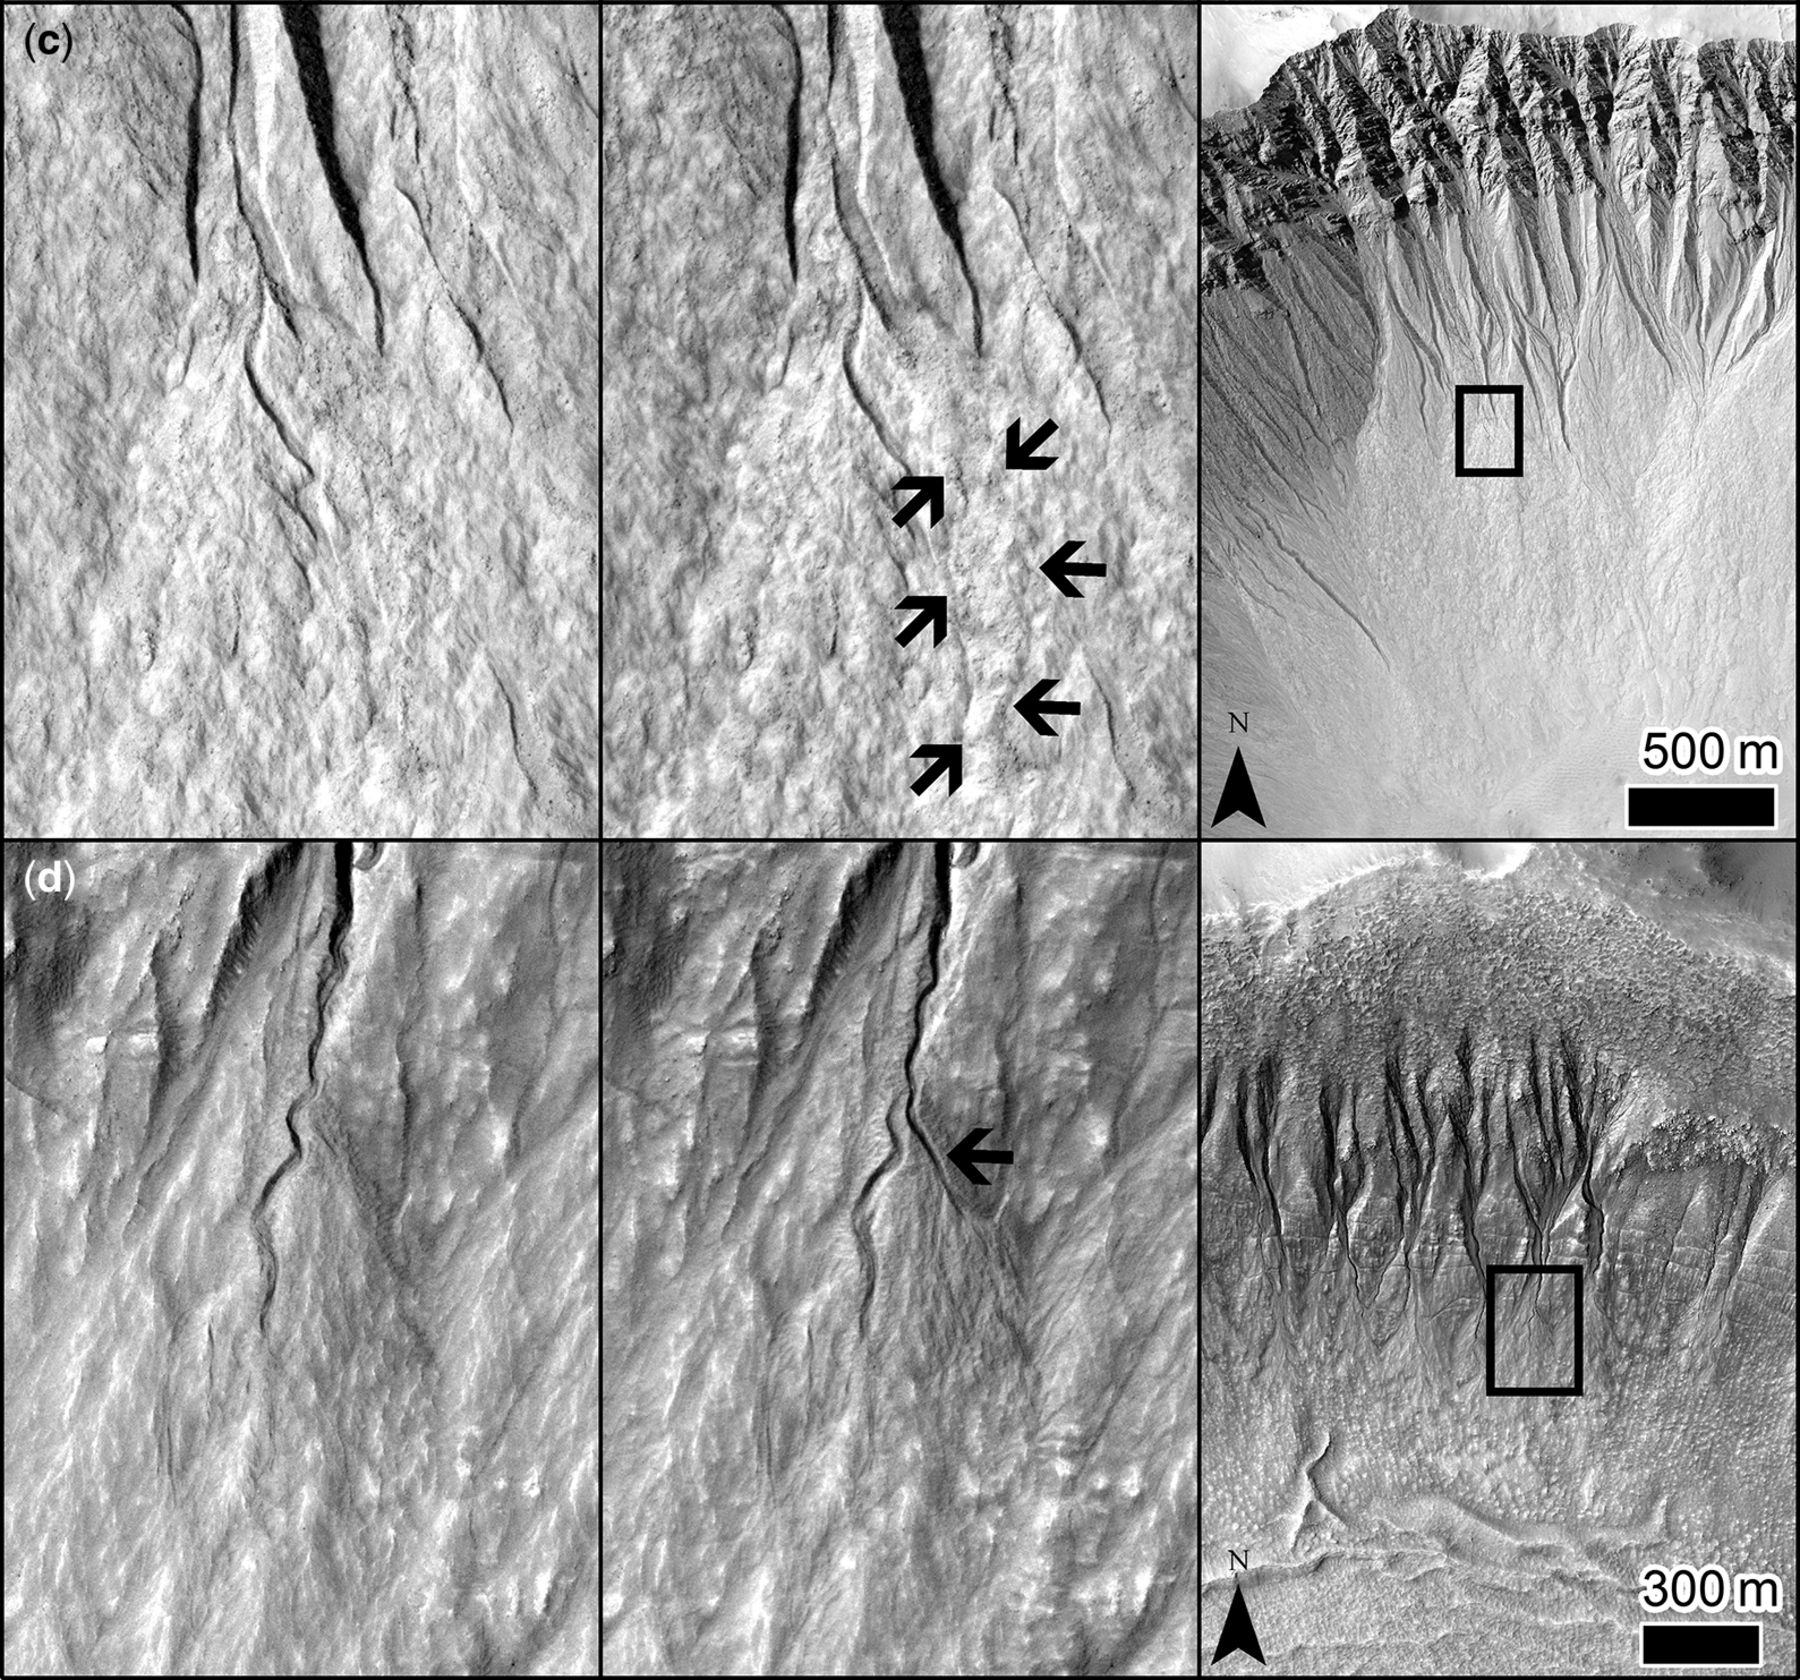 best applications of numerical dating techniques for a tree log buried in a holocene flood